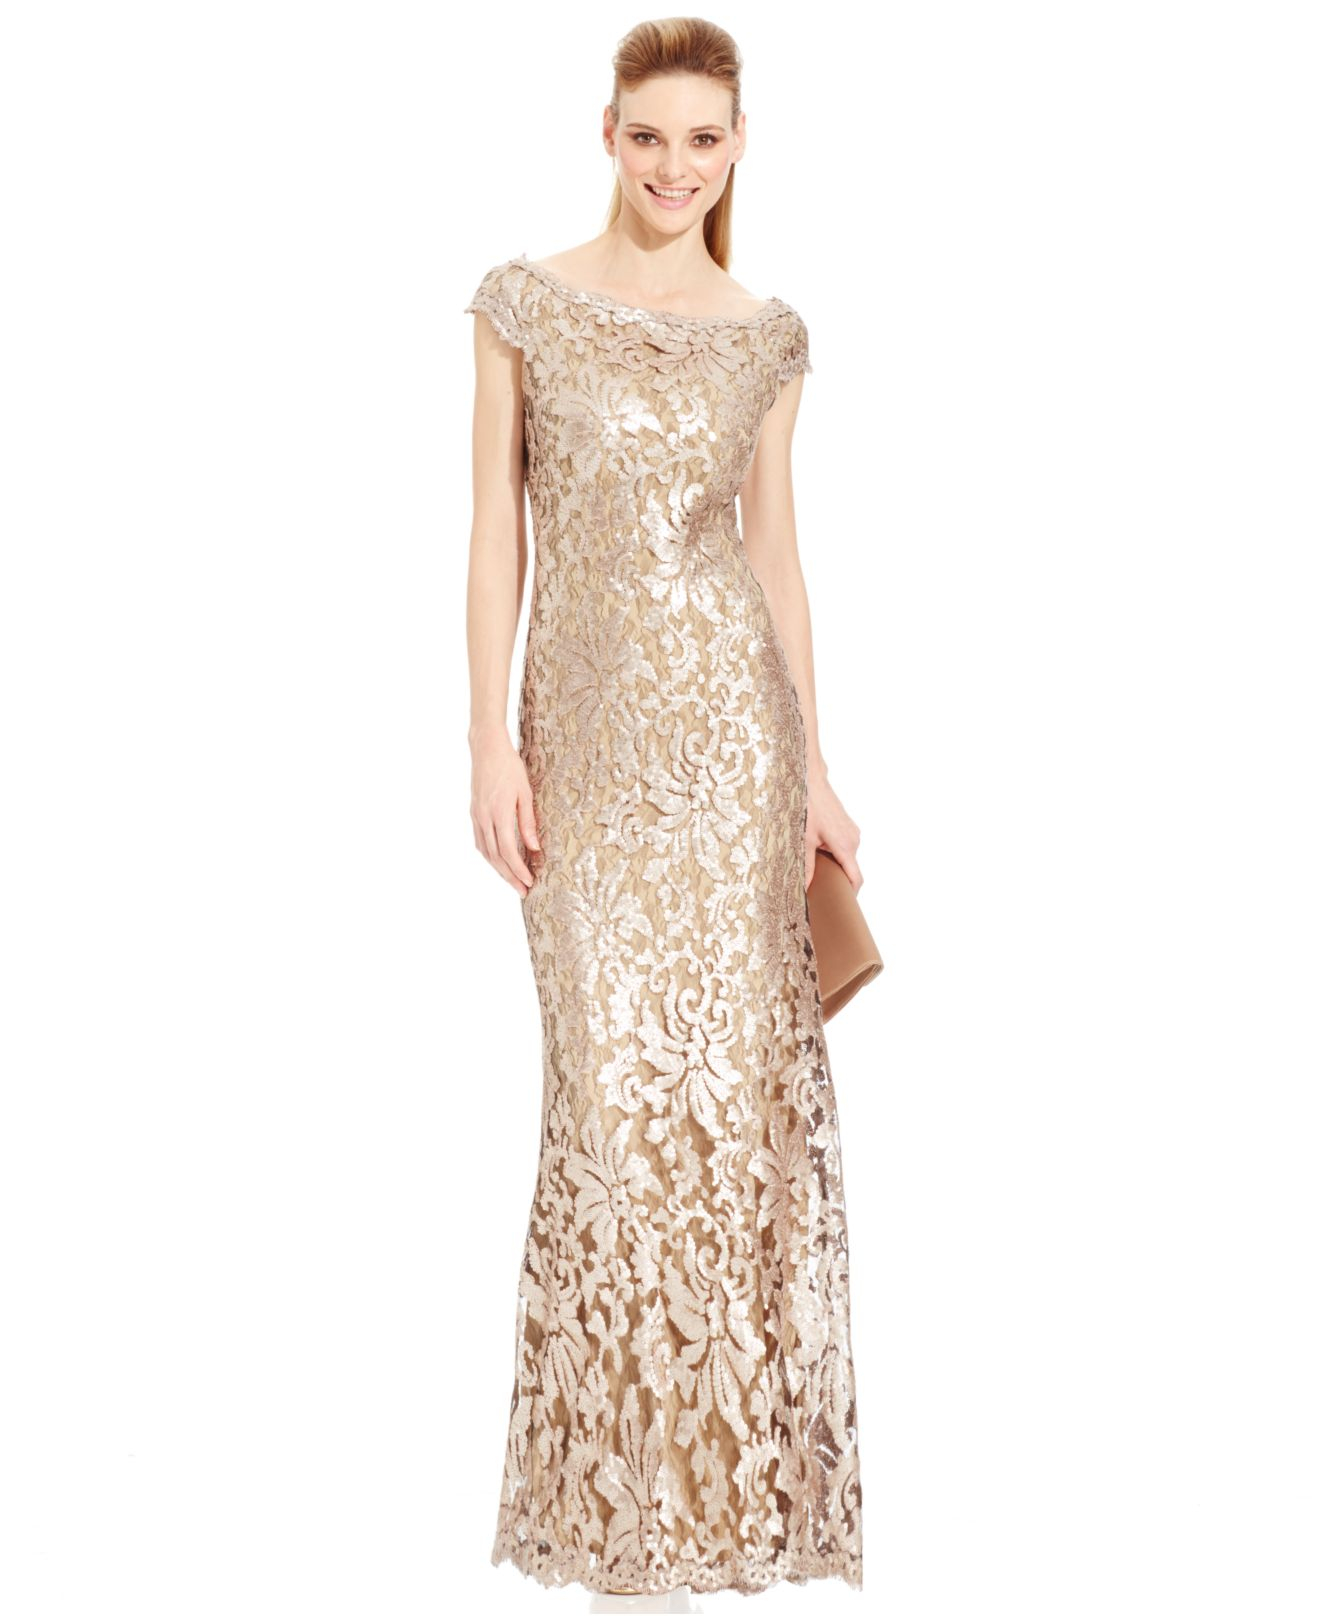 Lyst - Adrianna Papell Sequin-embellished Metallic Gown in Metallic